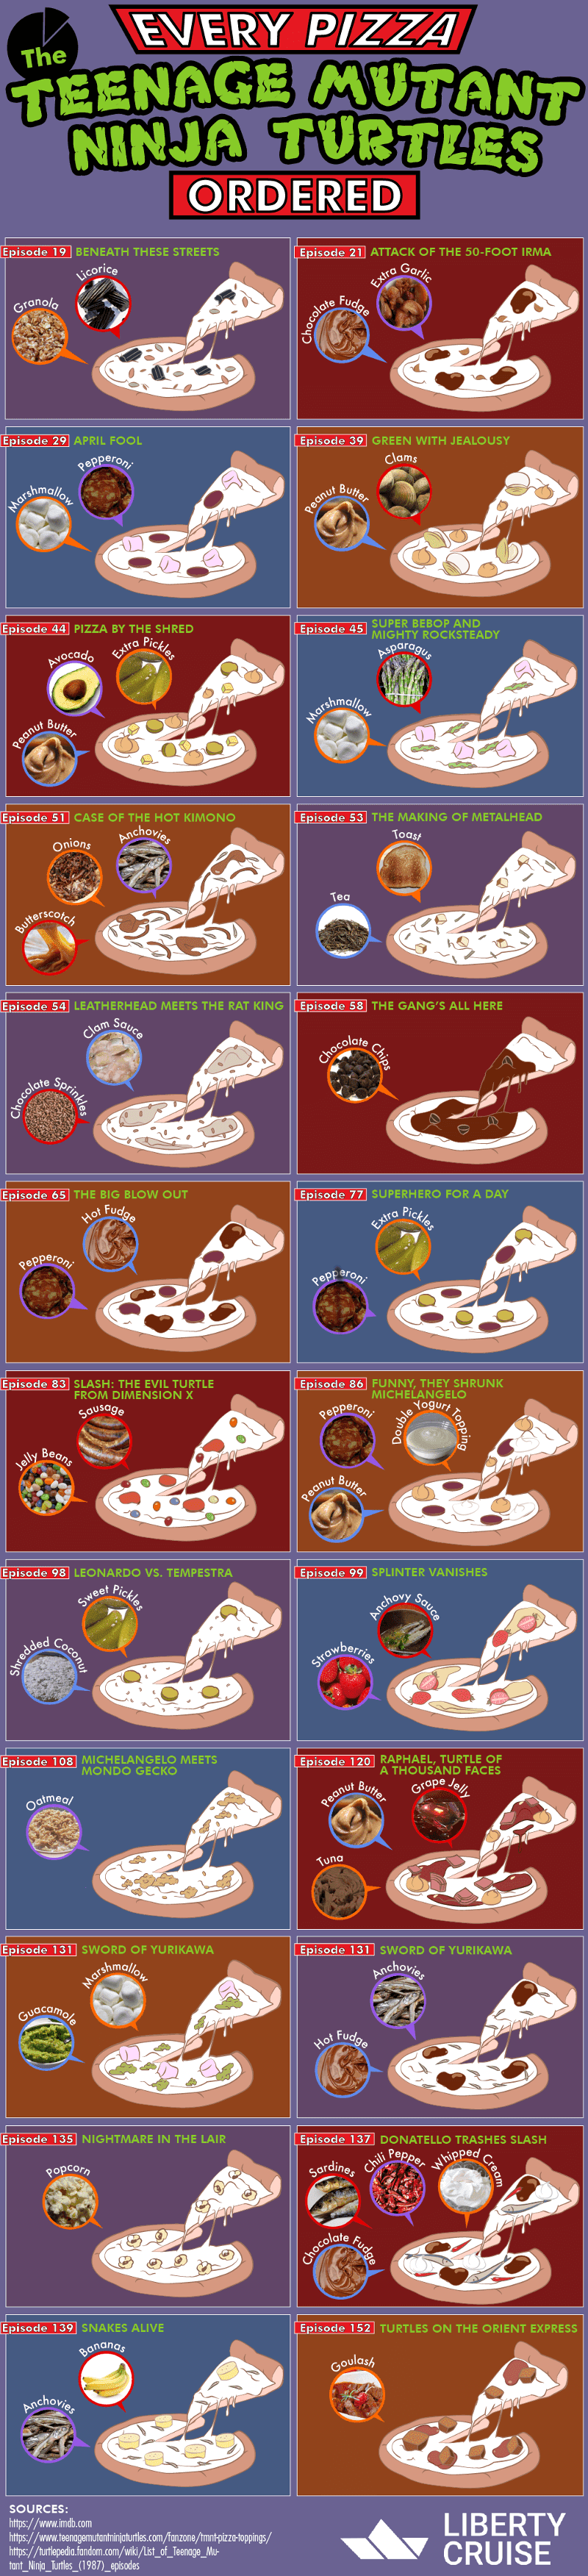 Every Pizza The Teenage Mutant Ninja Turtles Ordered #infographic